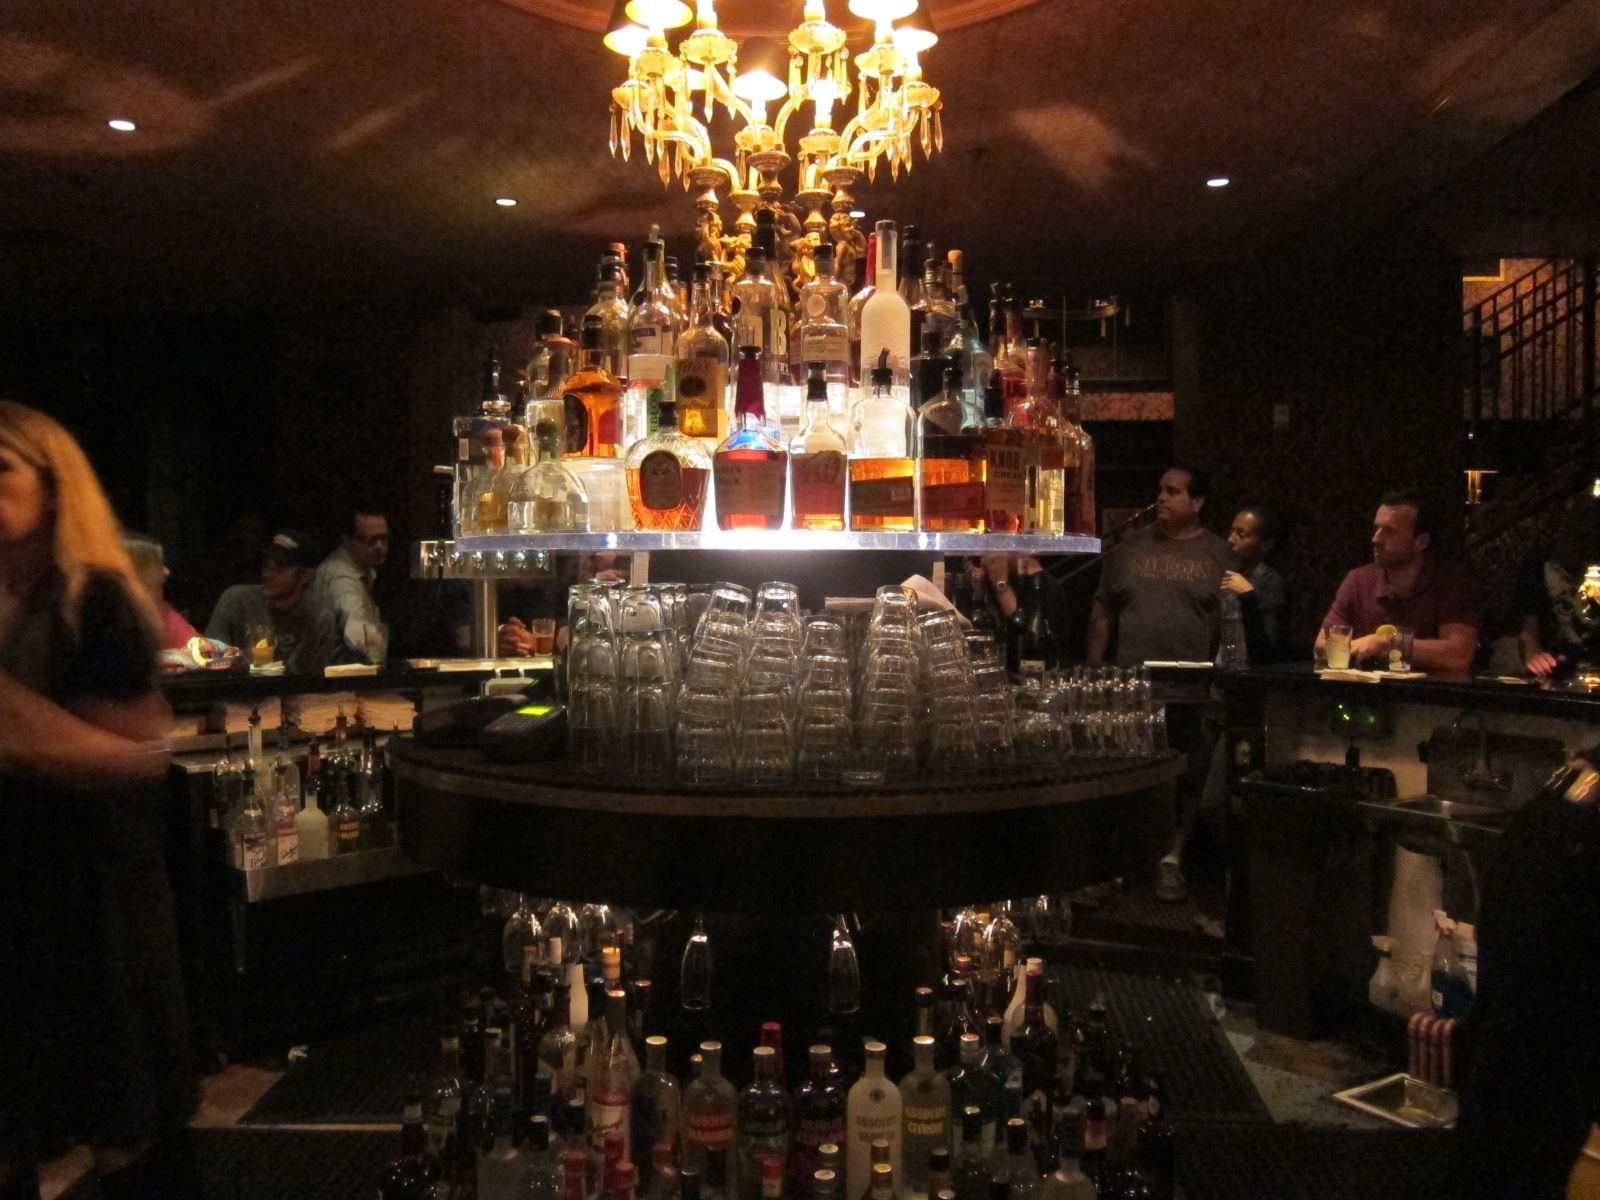 Right In The Heart Of Downtown La, The Broadway Bar